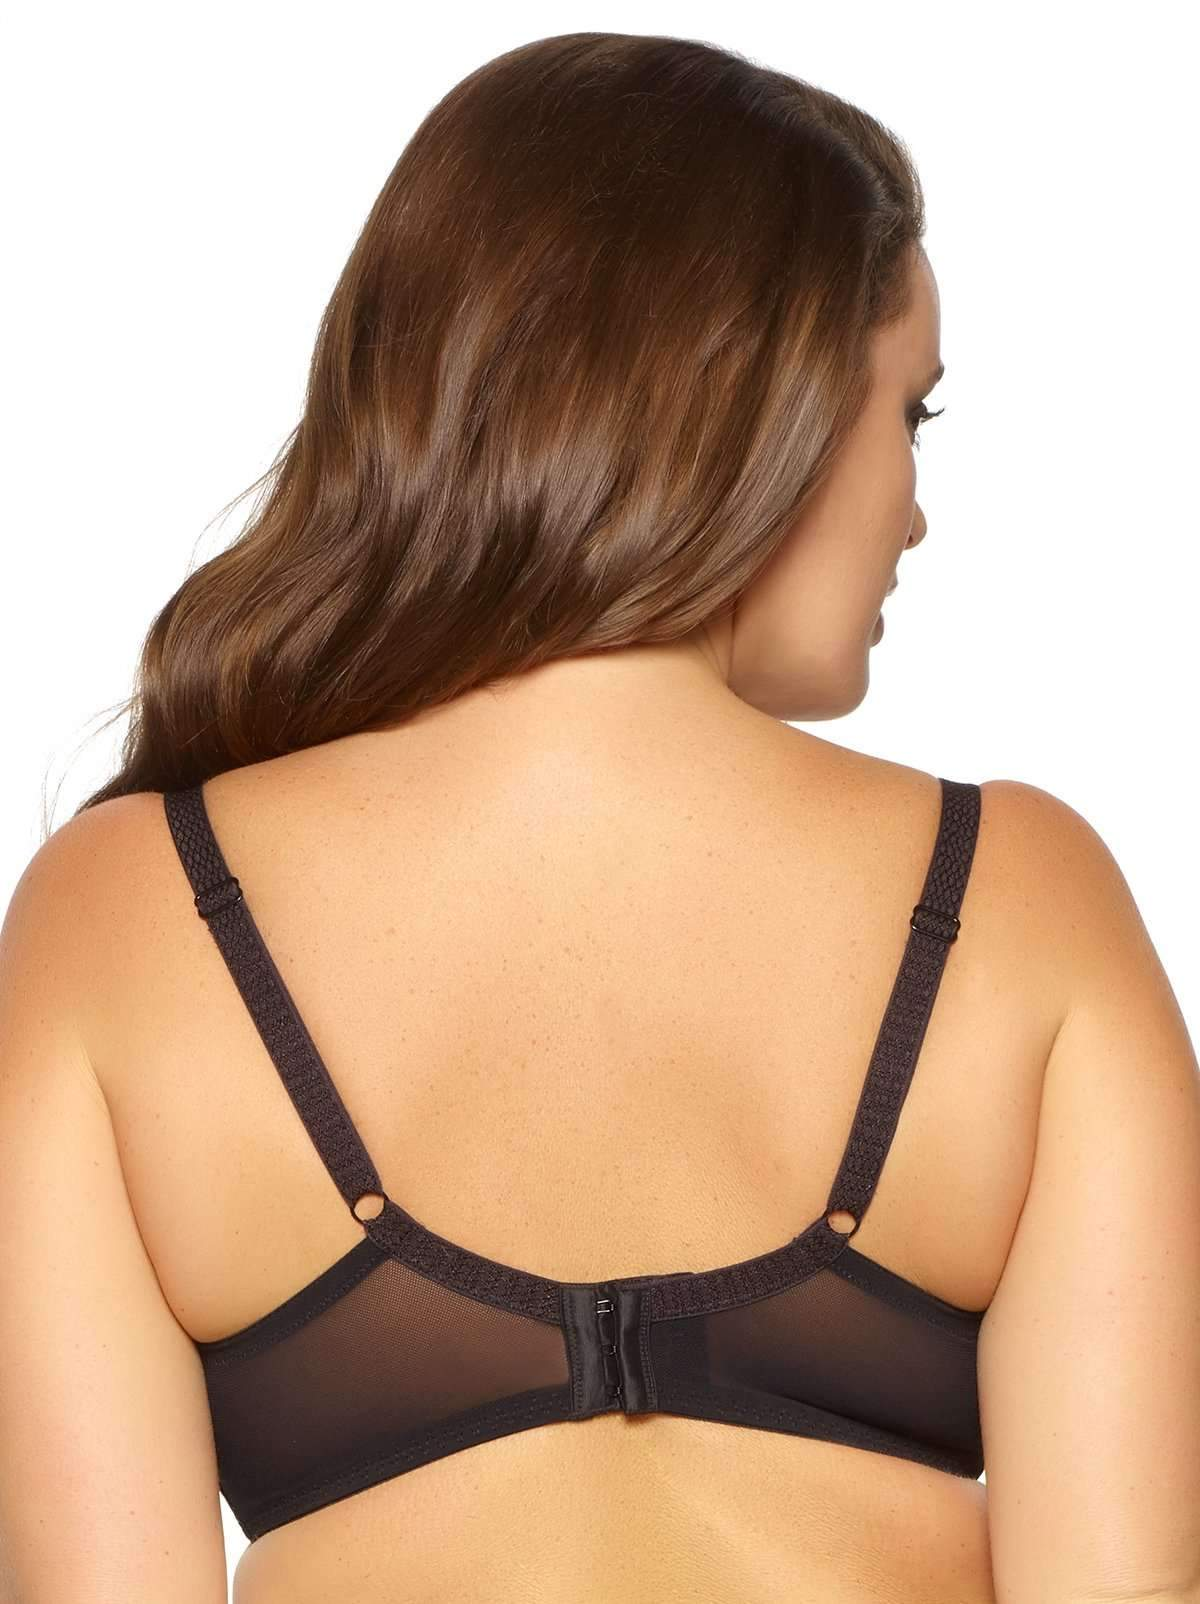 Paramour by Felina Dahlia Geo Lace 4-Section Cup Bra back shot color-black